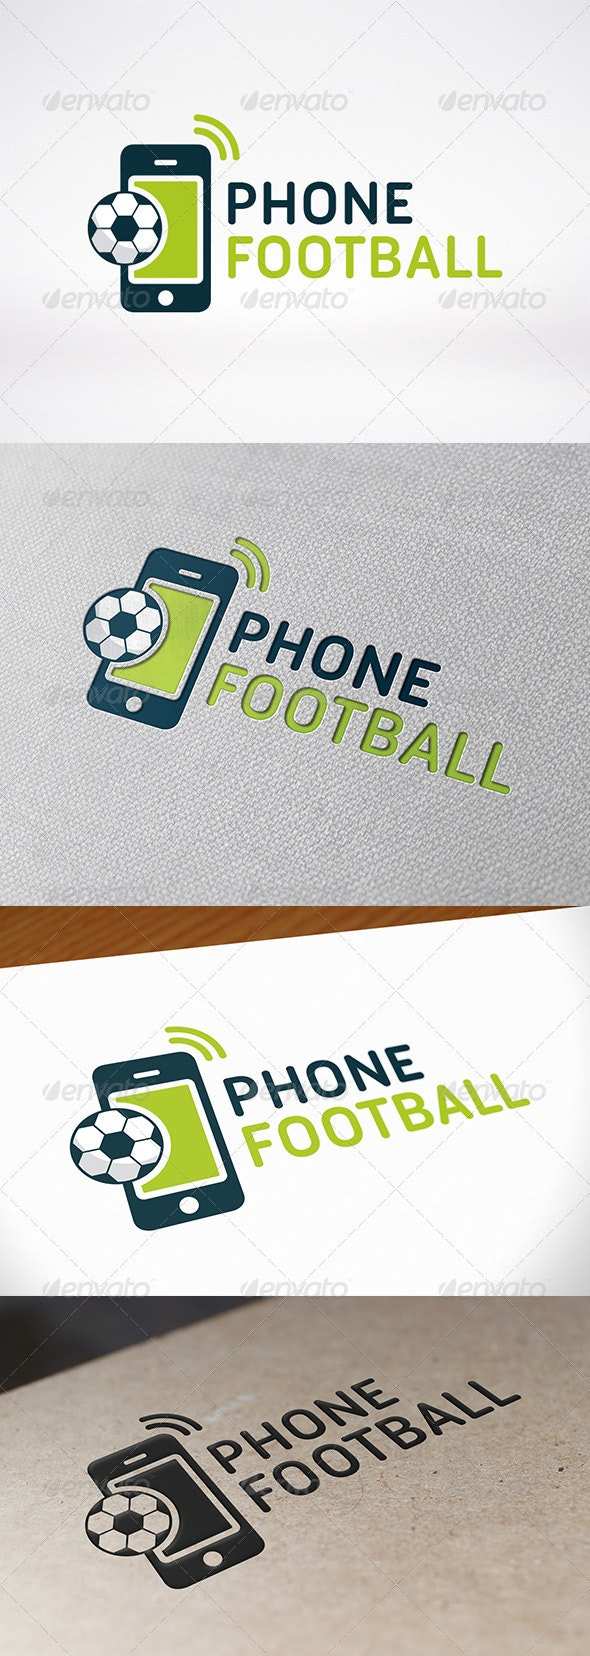 Football Phone Logo Template